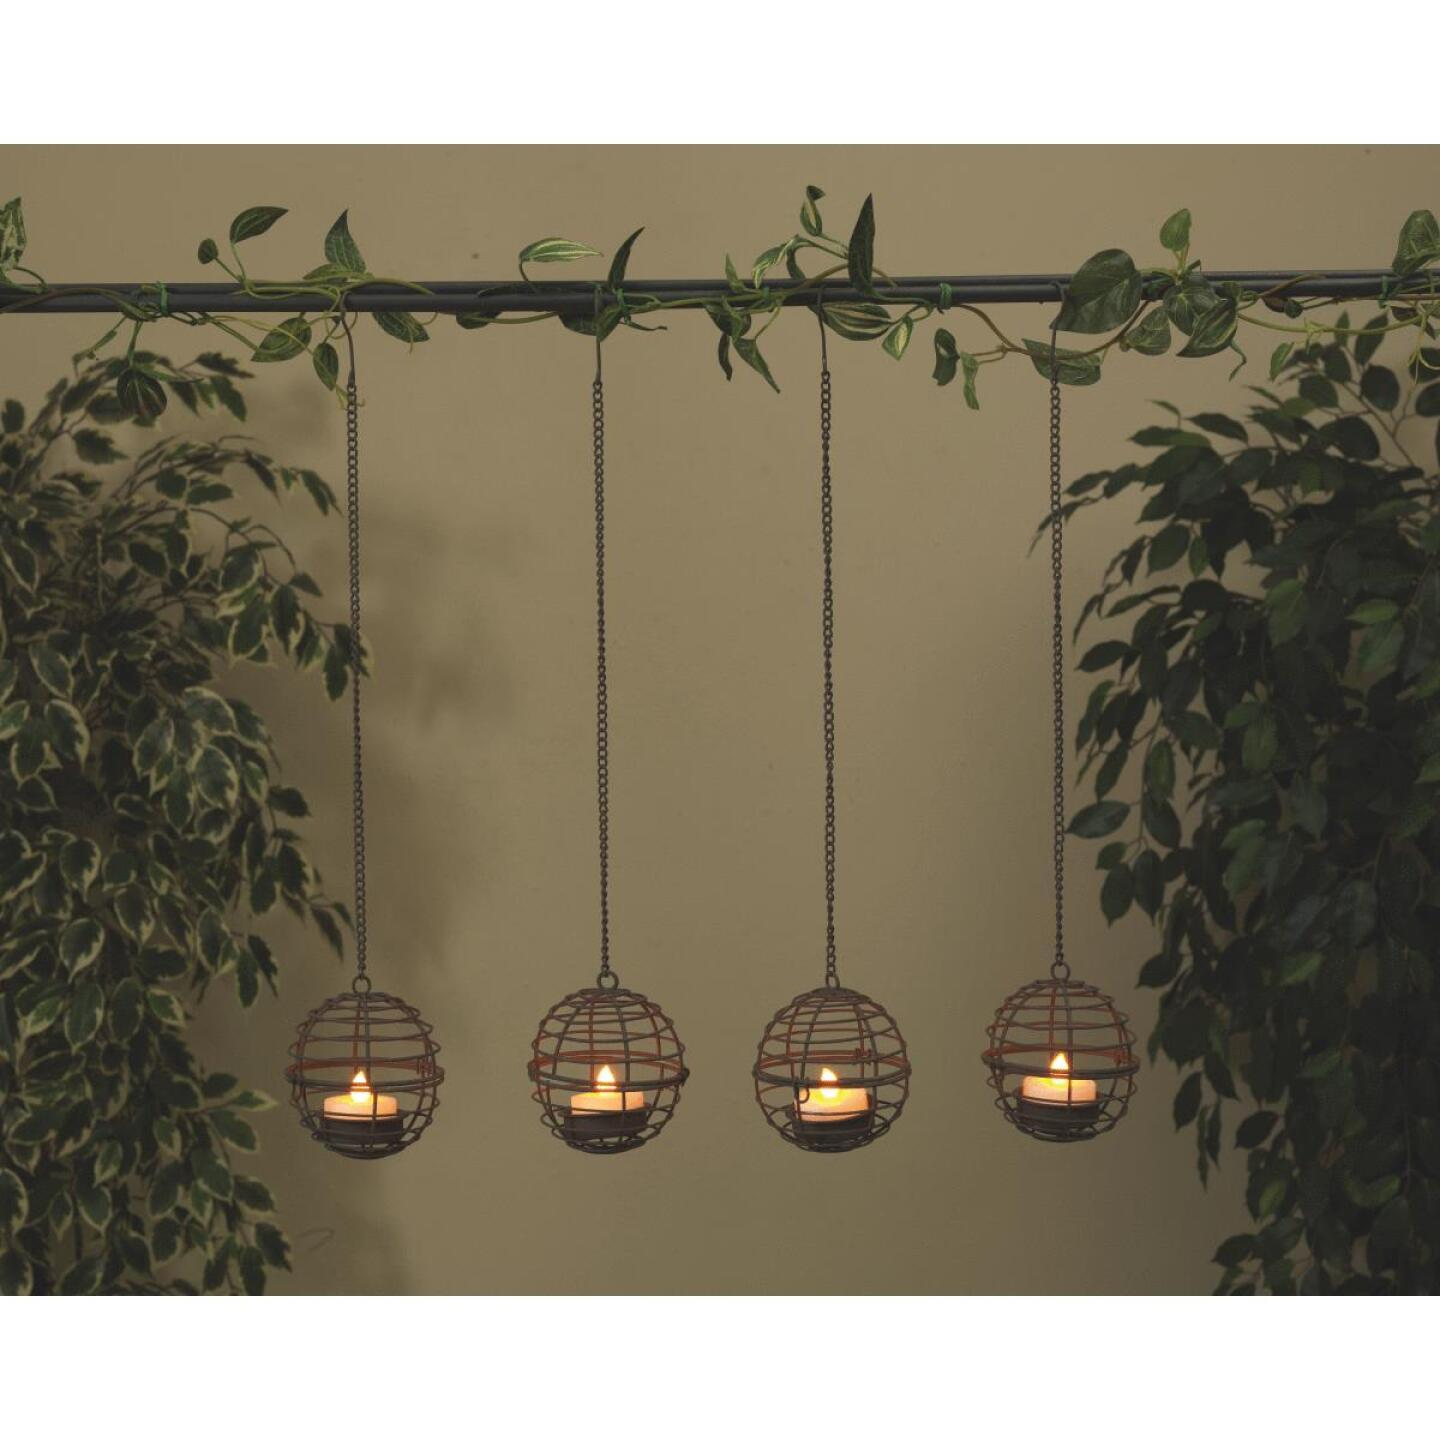 Gerson 4-Light Brown Wire Hanging Fireball Patio Light Set (4-Pack) Image 2